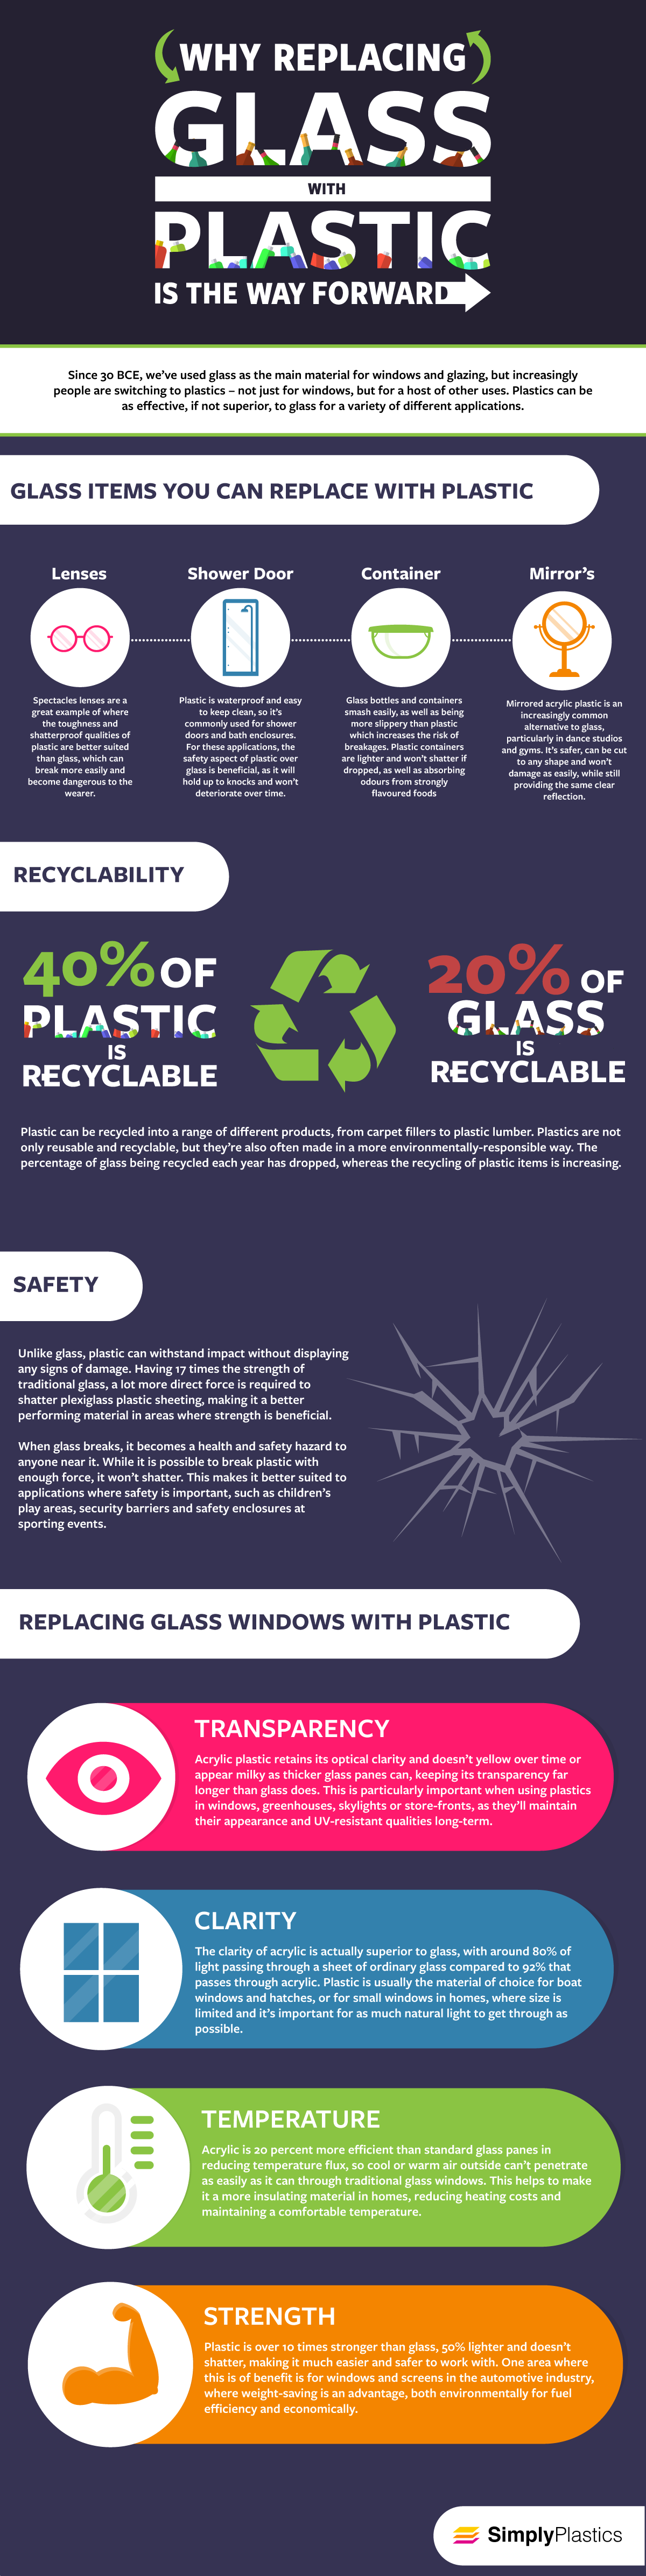 Why Replacing Glass With Plastic is the Way Forward